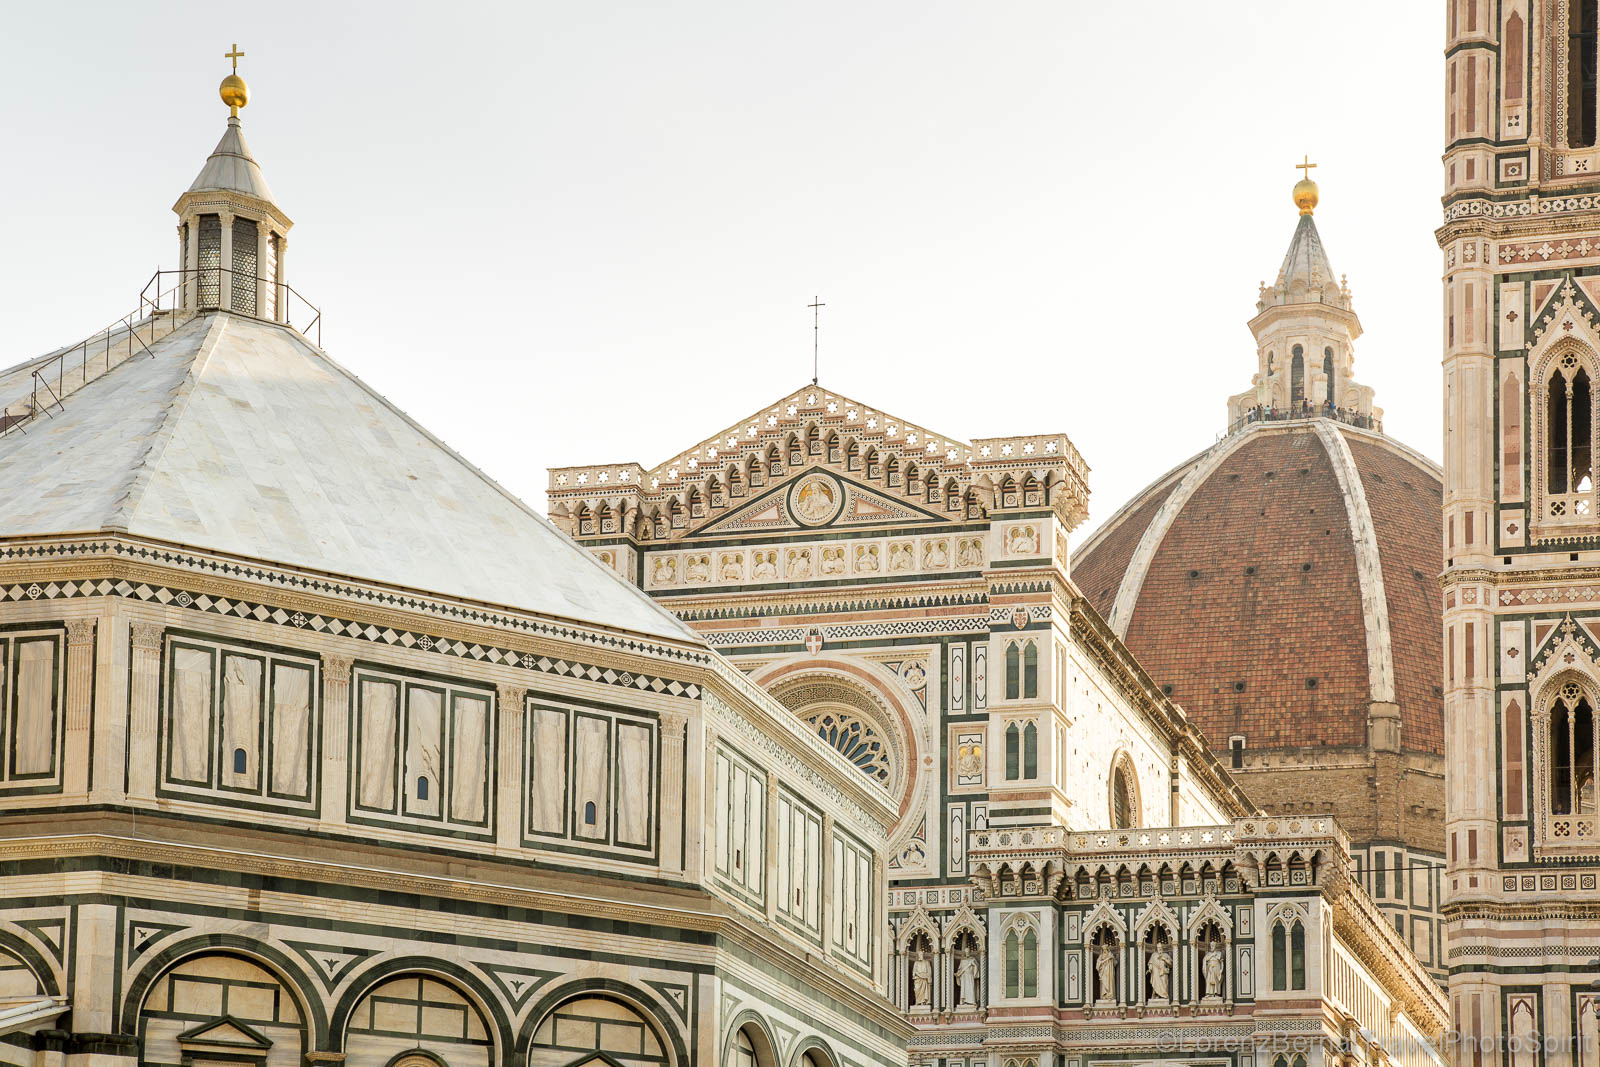 Santa Maria del Fiore Cathedral (Saint Mary of the Flower Cathedral) and the Battistero (Baptistery) in the Piazza del Duomo, Florence, Tuscany, Italy.